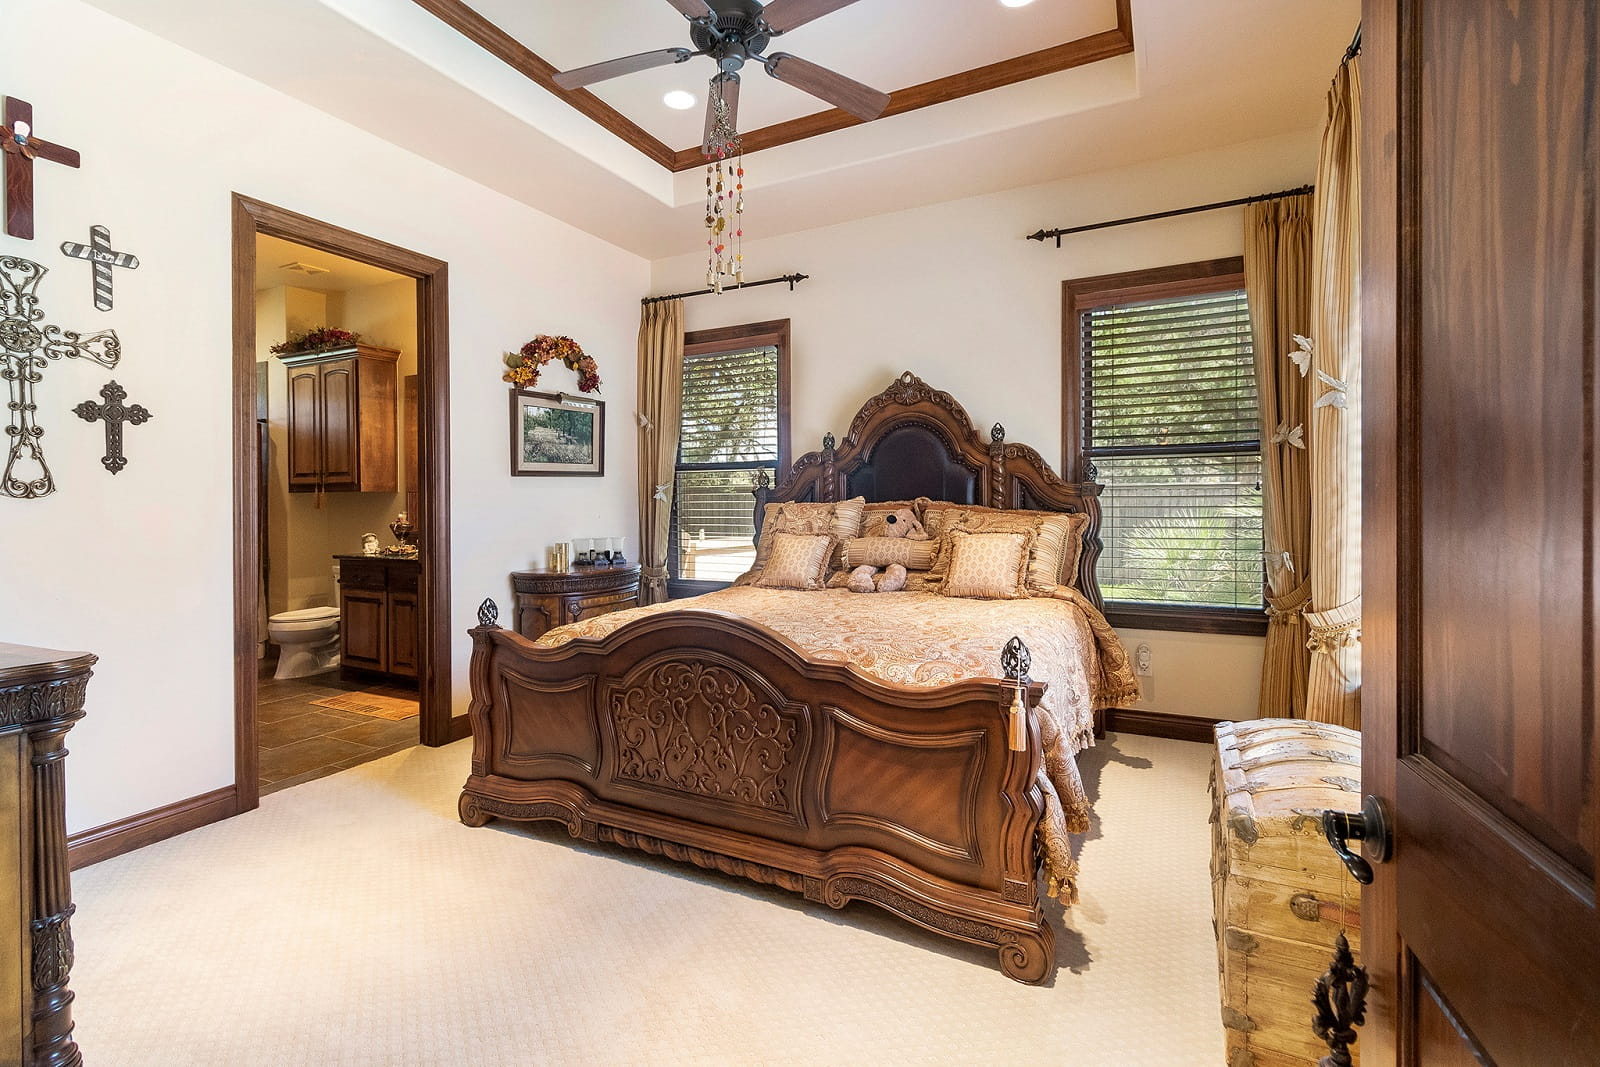 Real Estate Photography in Cedar Park - TX - Bedroom View